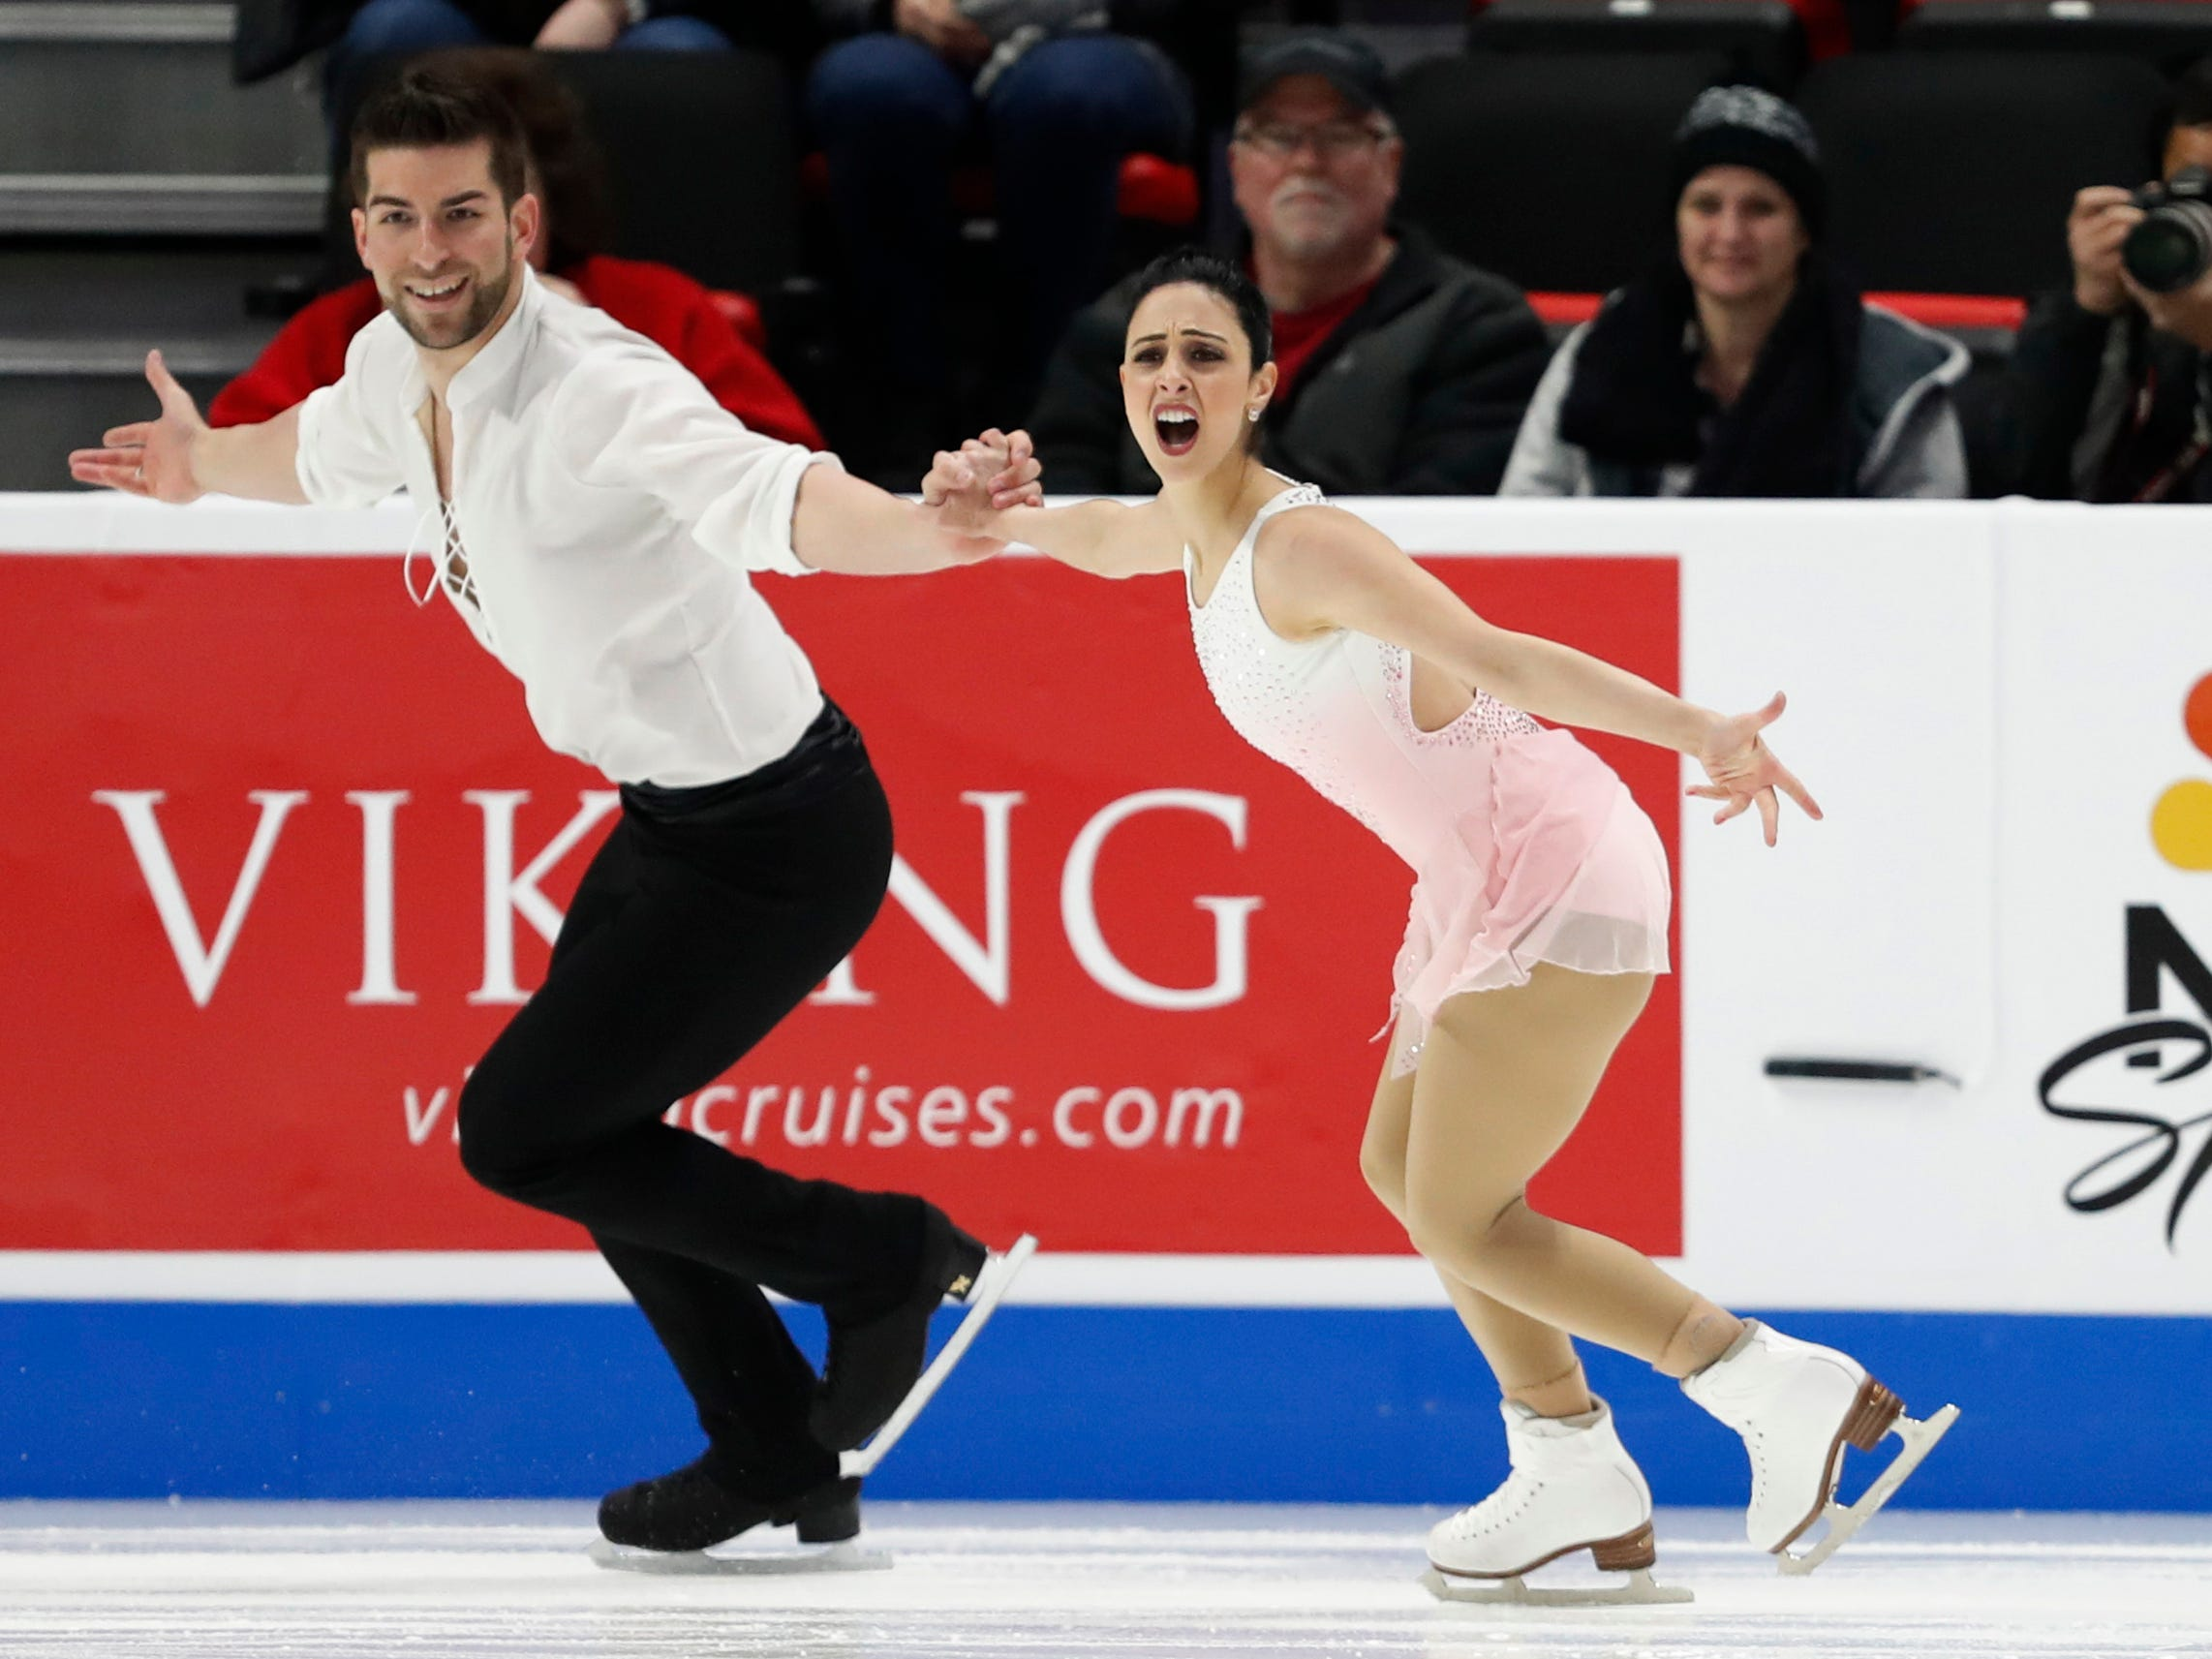 Deanna Stellato-Dudek and Nathan Bartholomay perform in the pairs short program.